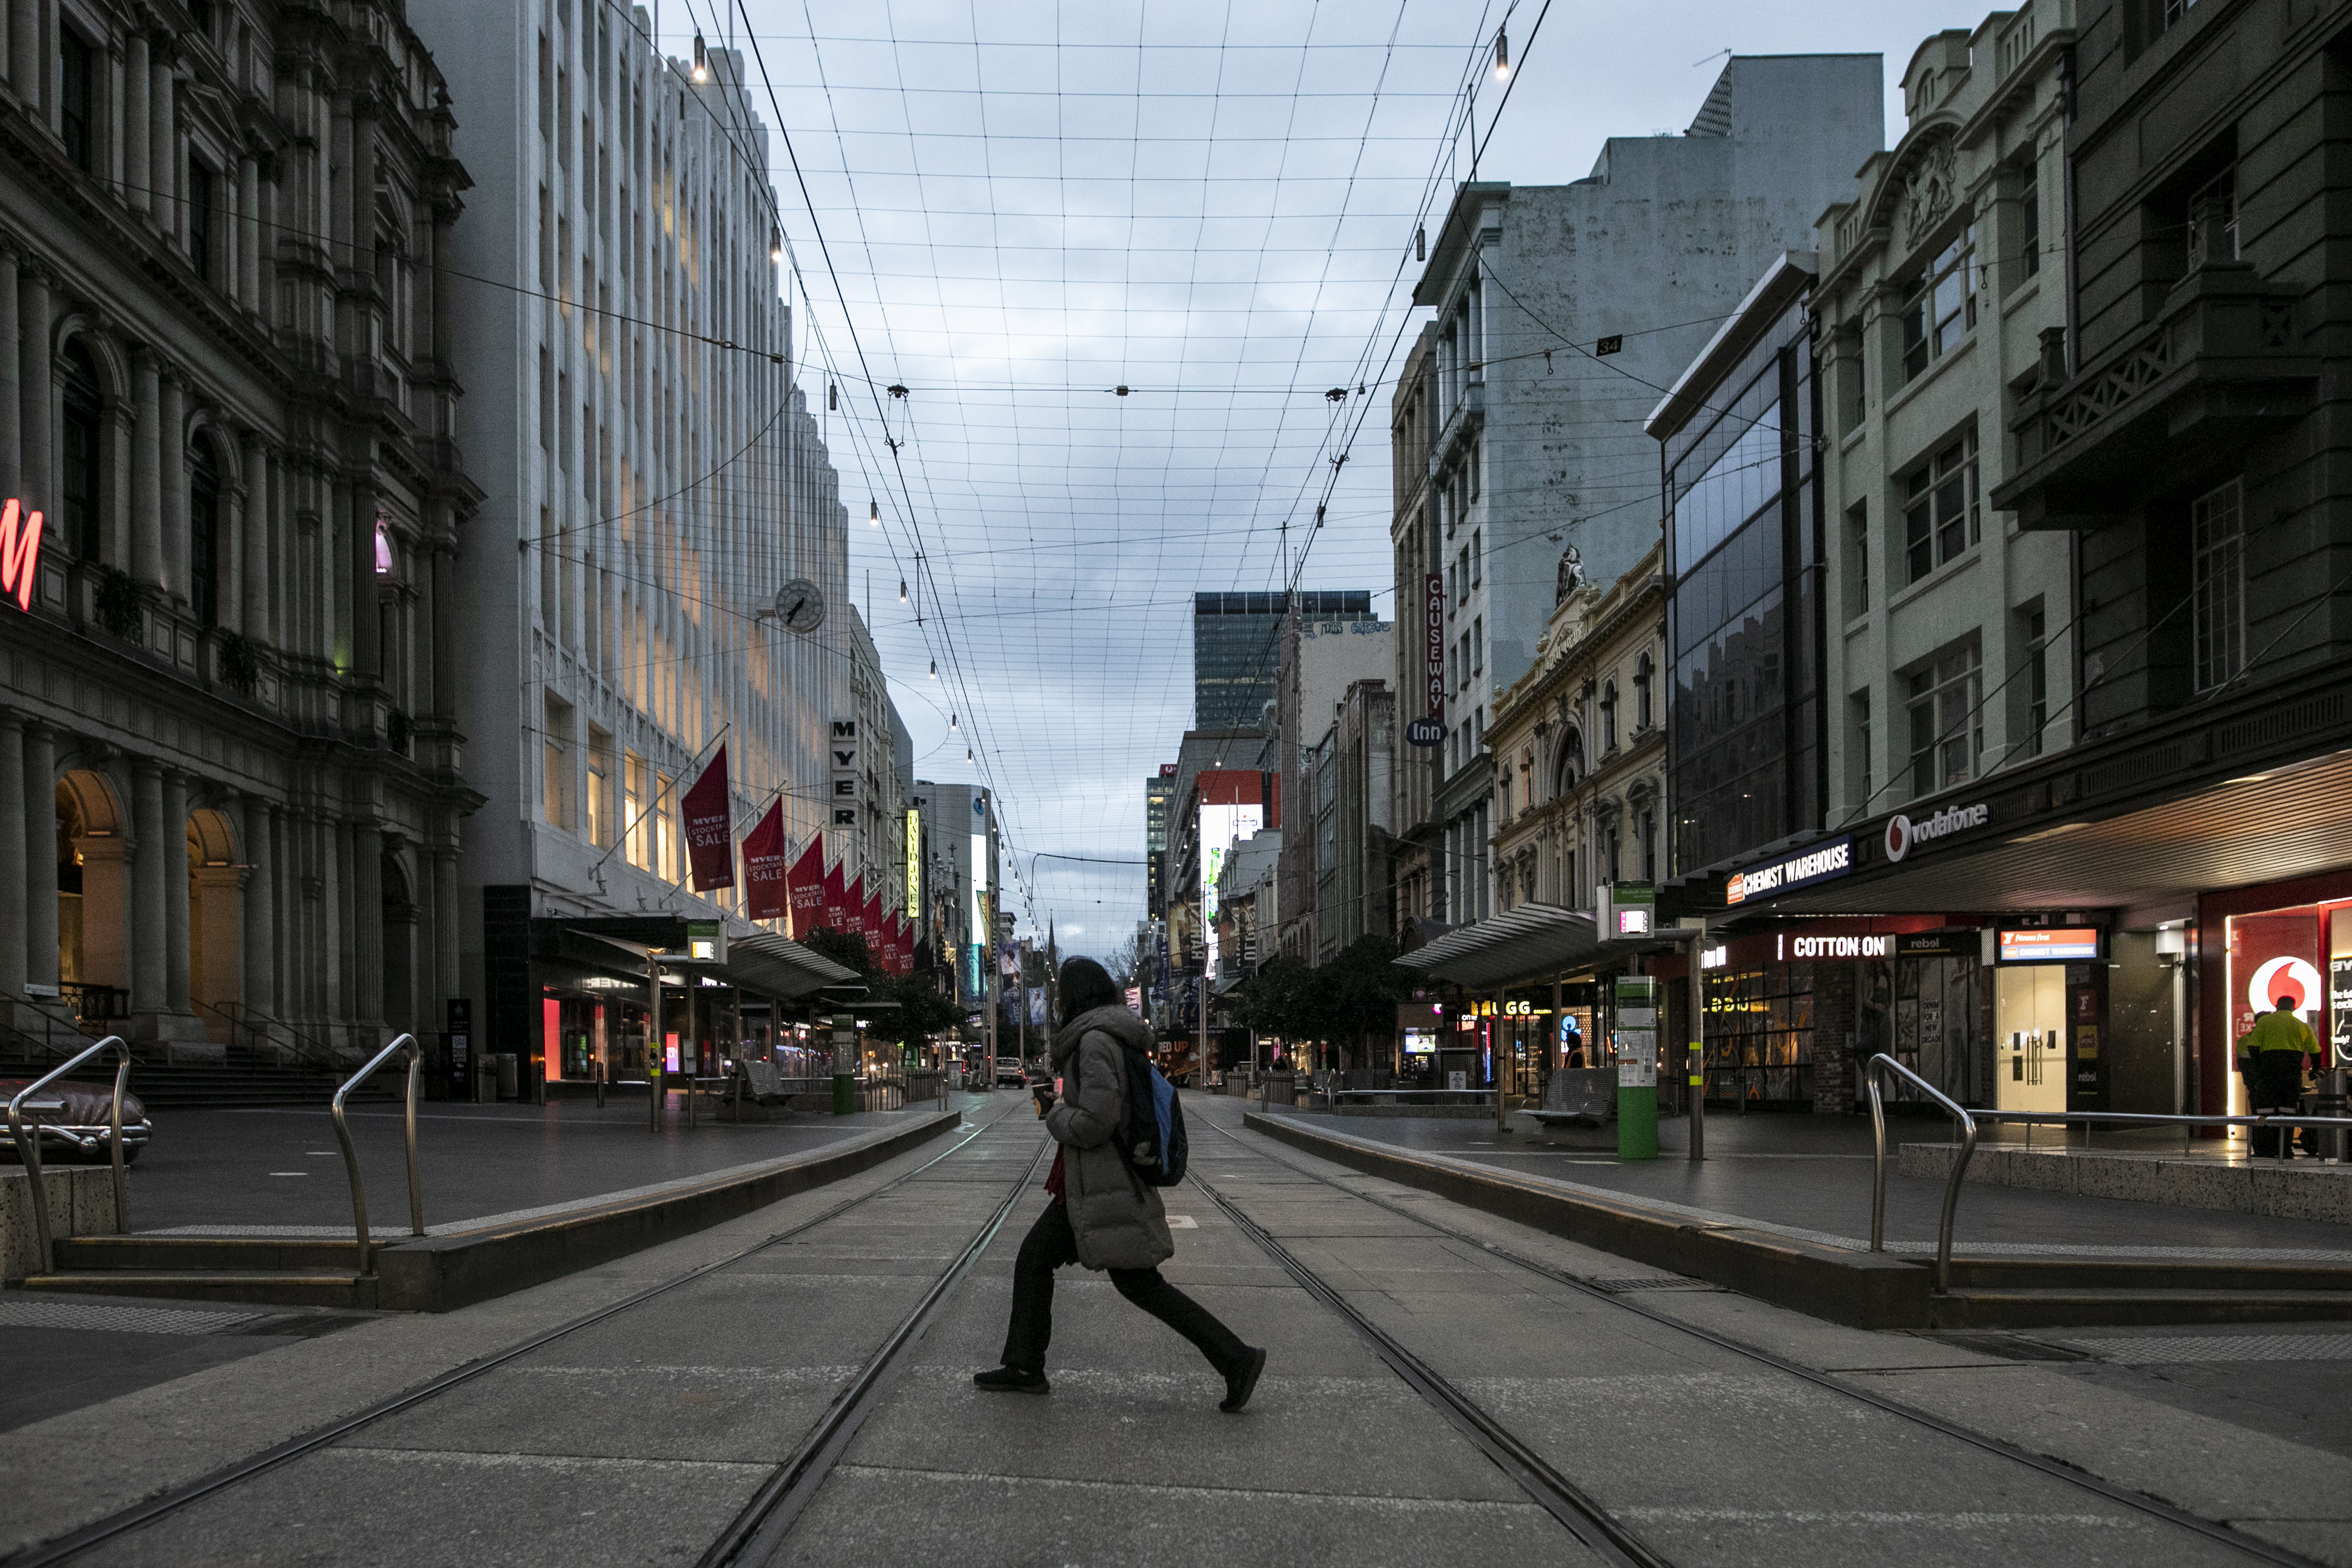 Restrictions tighten for NSW as state braces for extended lockdown